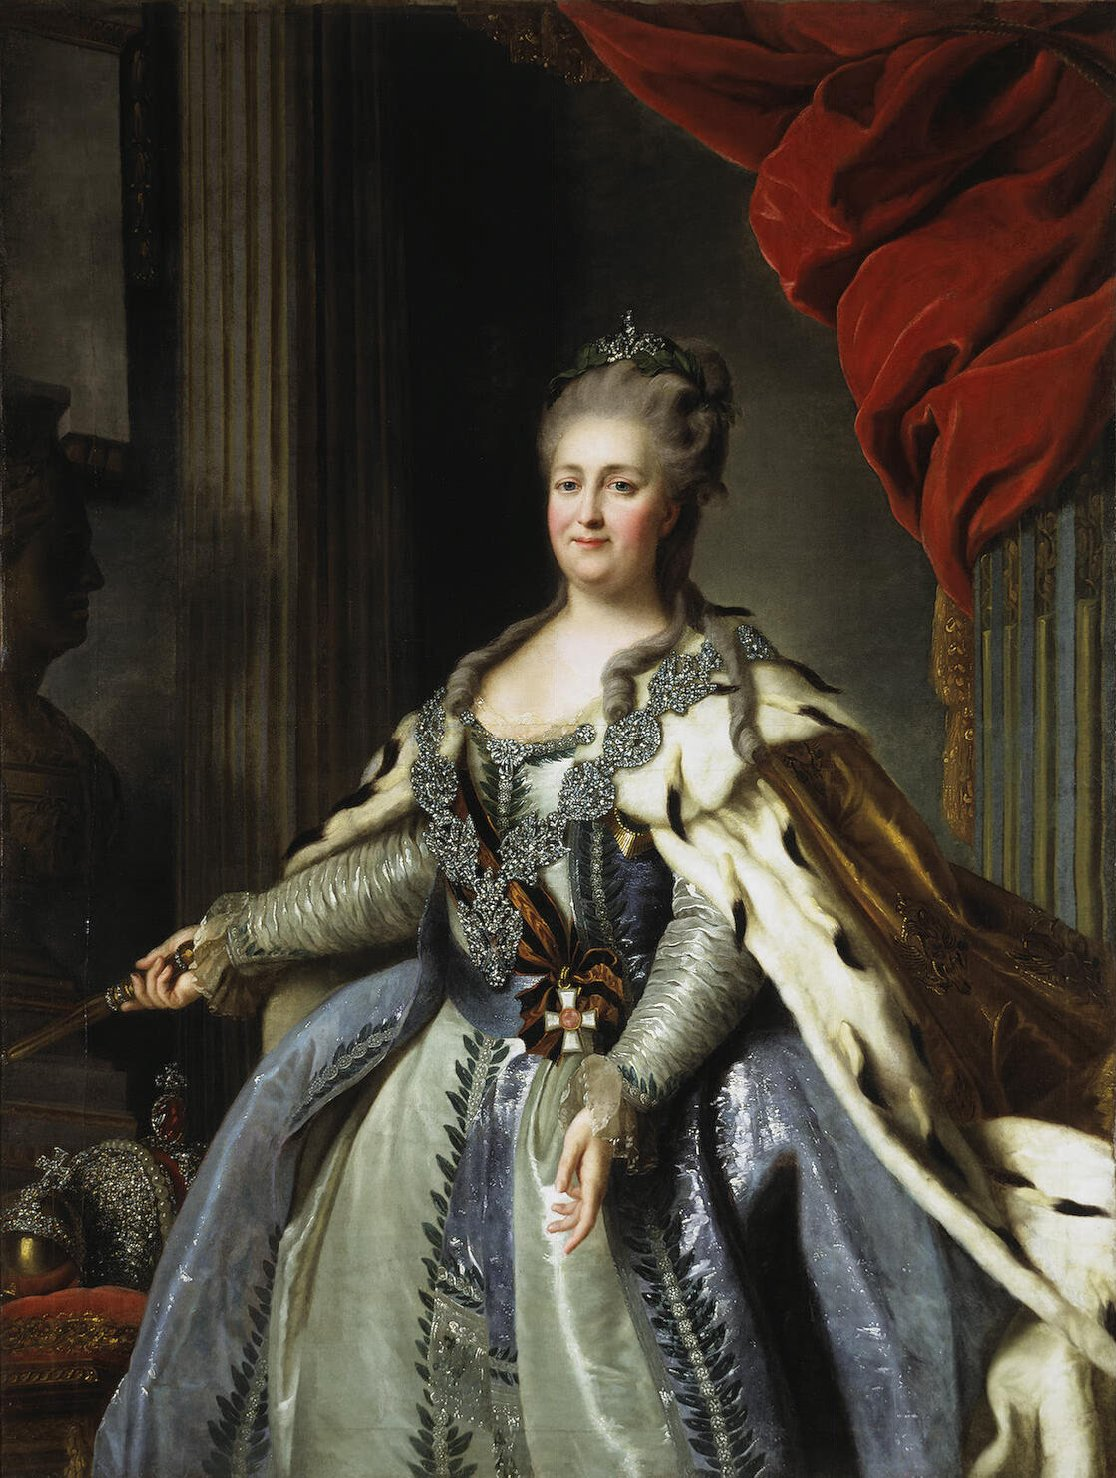 Catherine II by F.Rokotov after Roslin c.1770 Hermitage